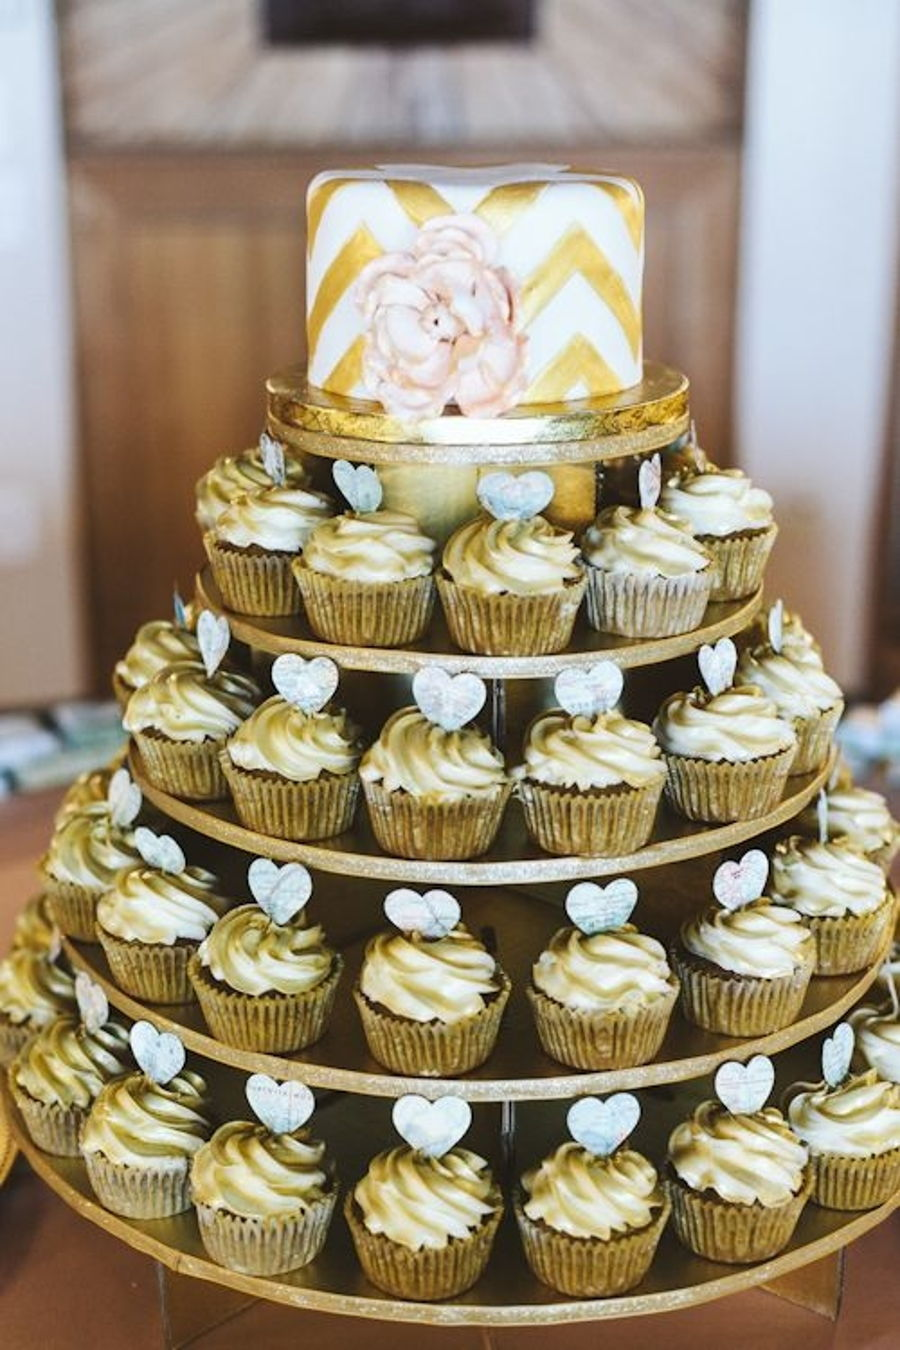 900_metallic-gold-buttercream_94612656da6e0320fce.jpg